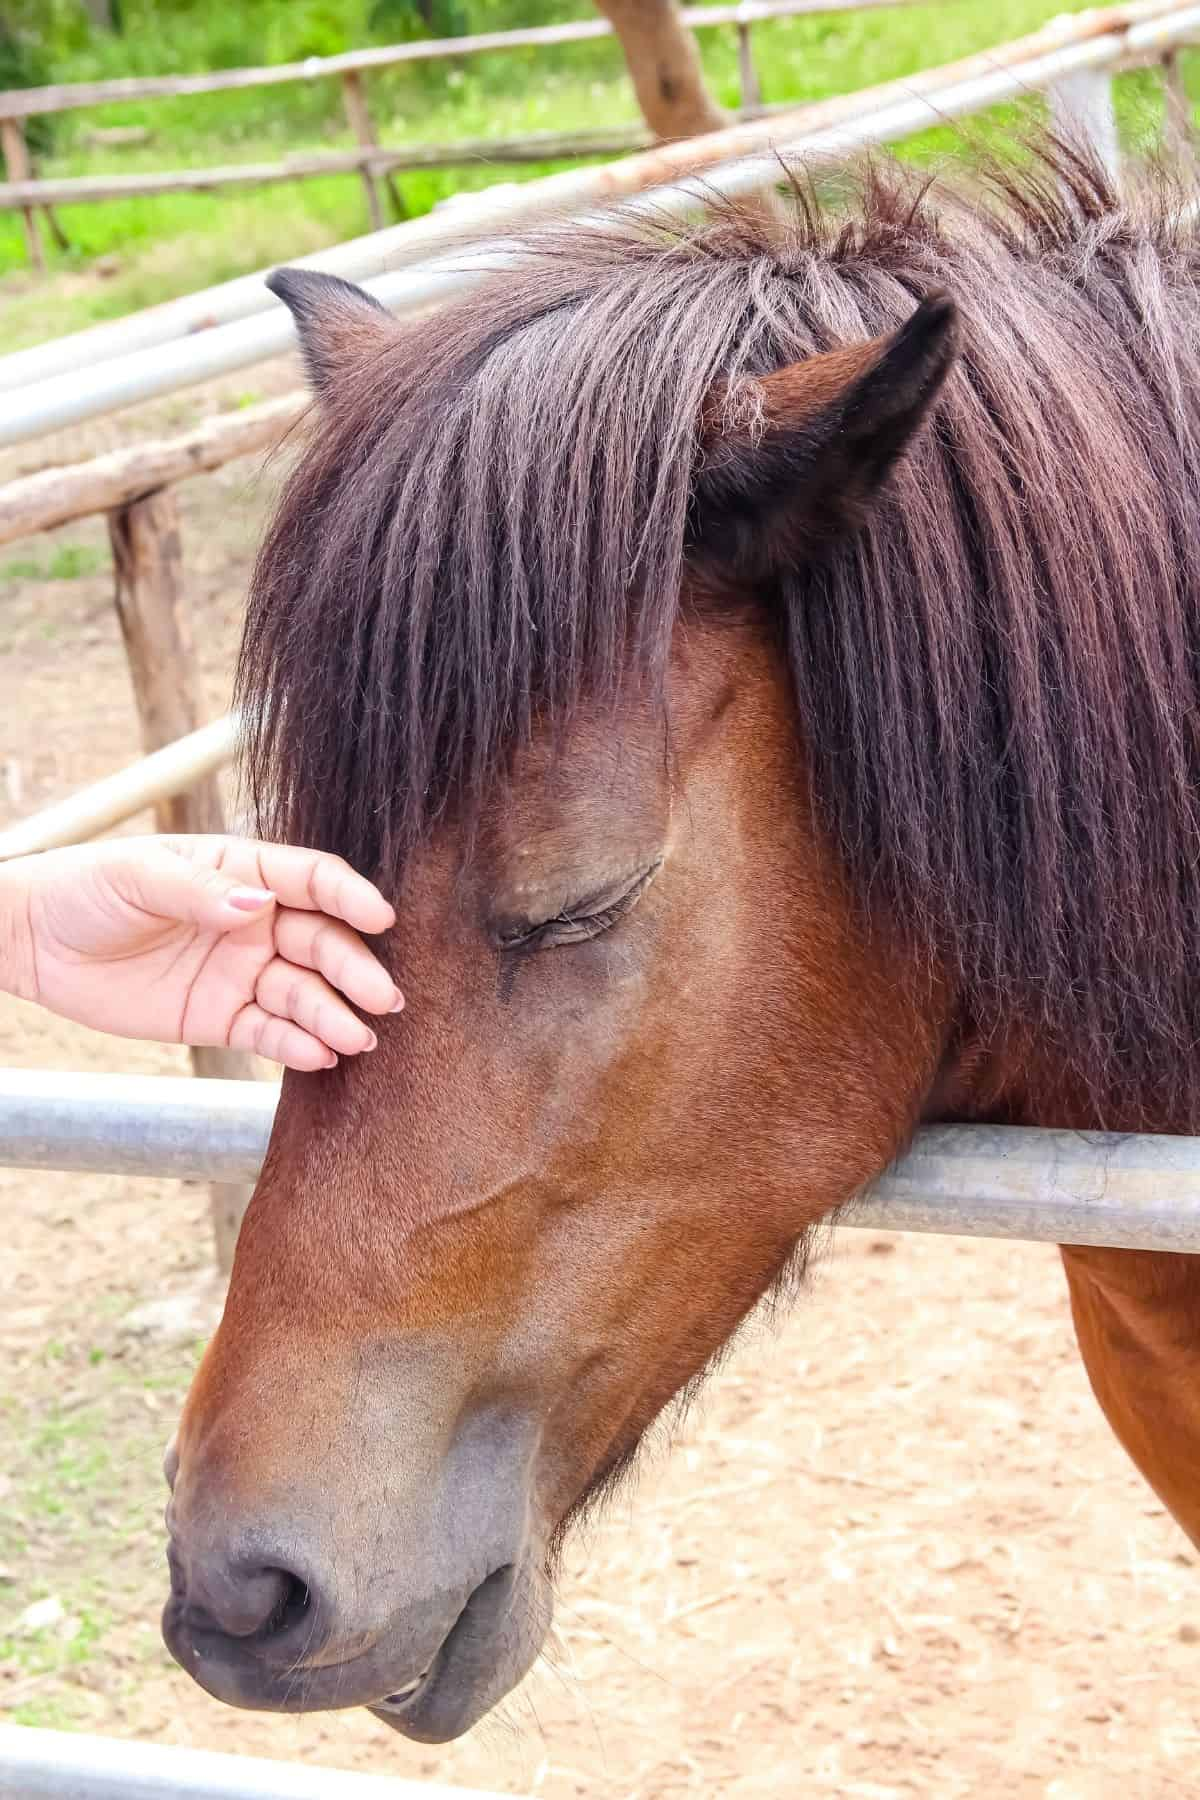 Petting horse nose